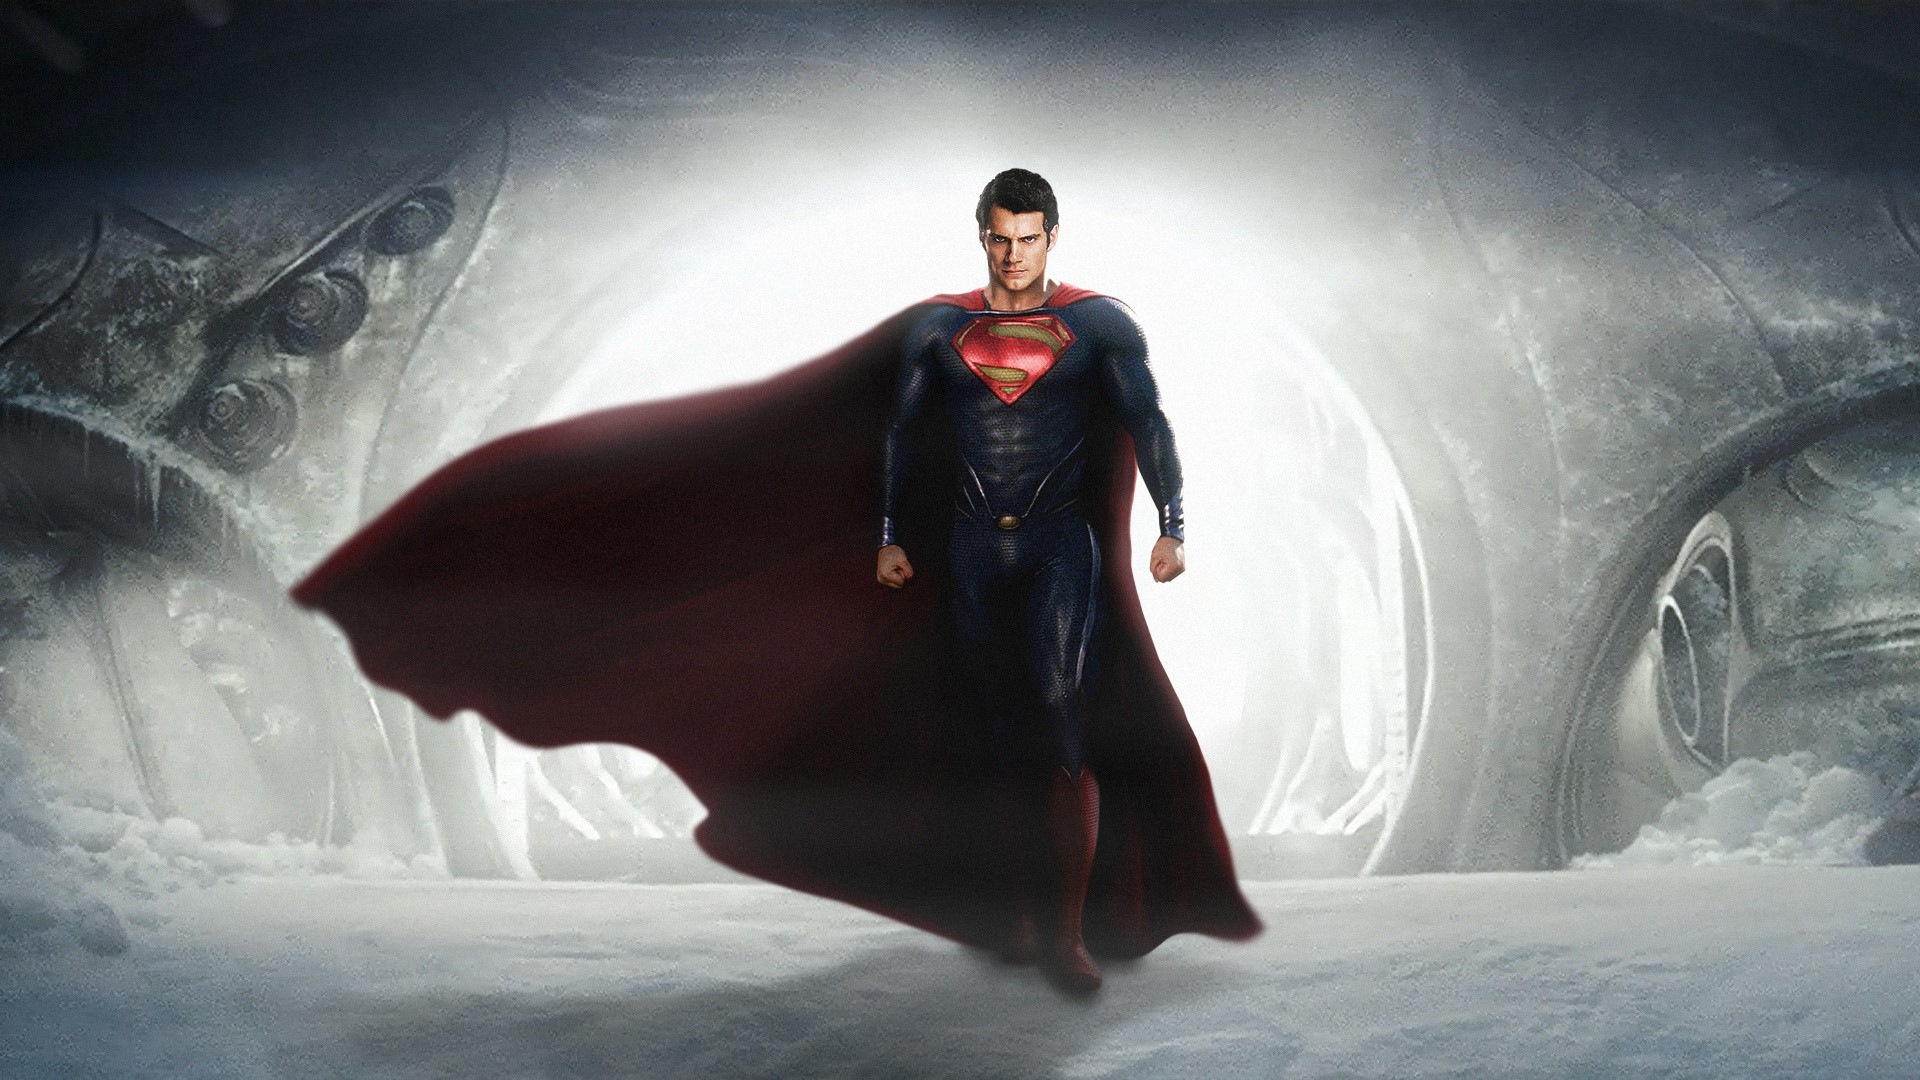 Wallpaper The man of steel